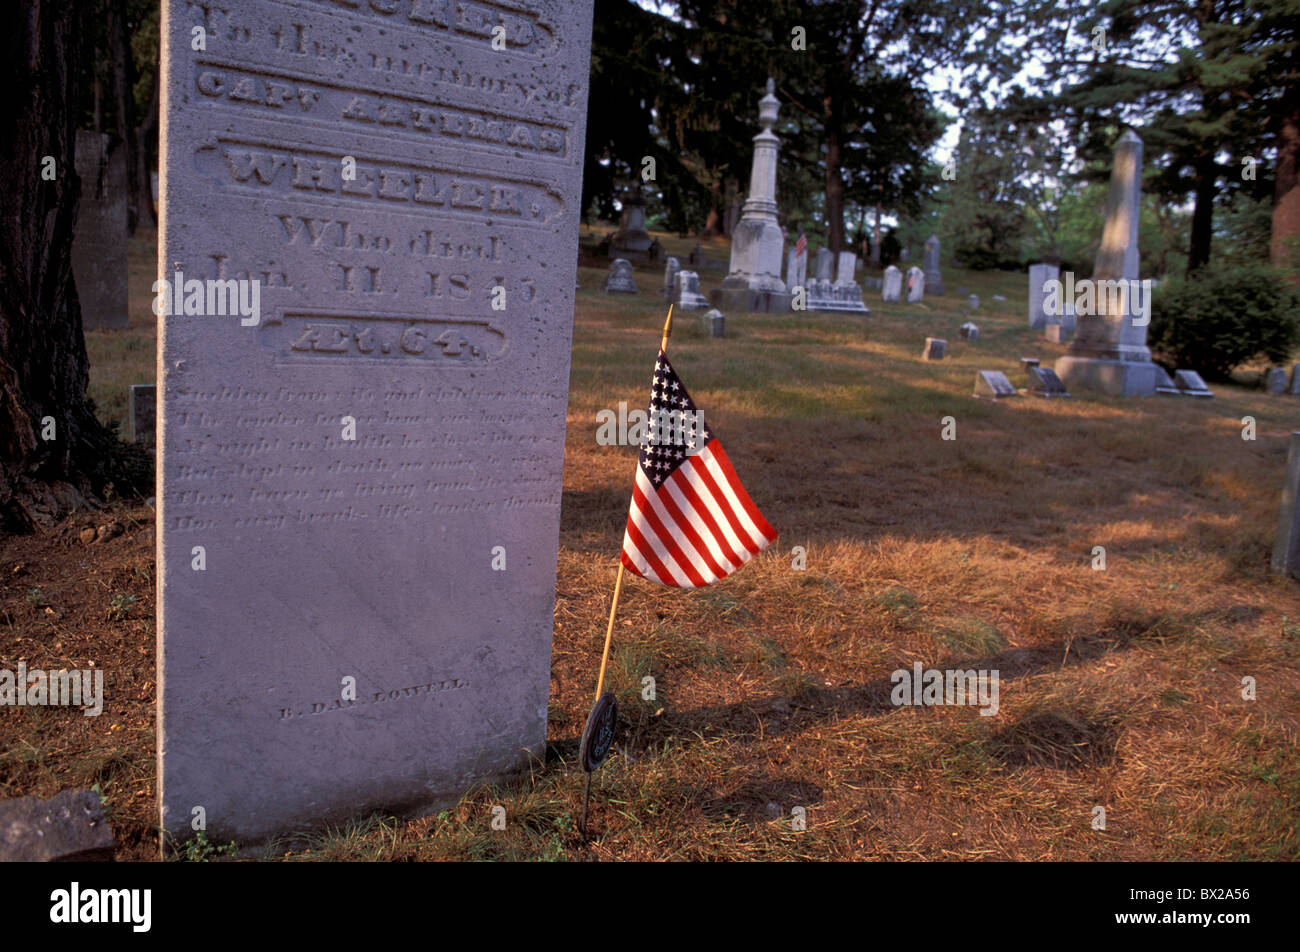 America Authors ridge Place de la Concorde Massachusetts Sleepy hollow cemetery United States North America U - Stock Image